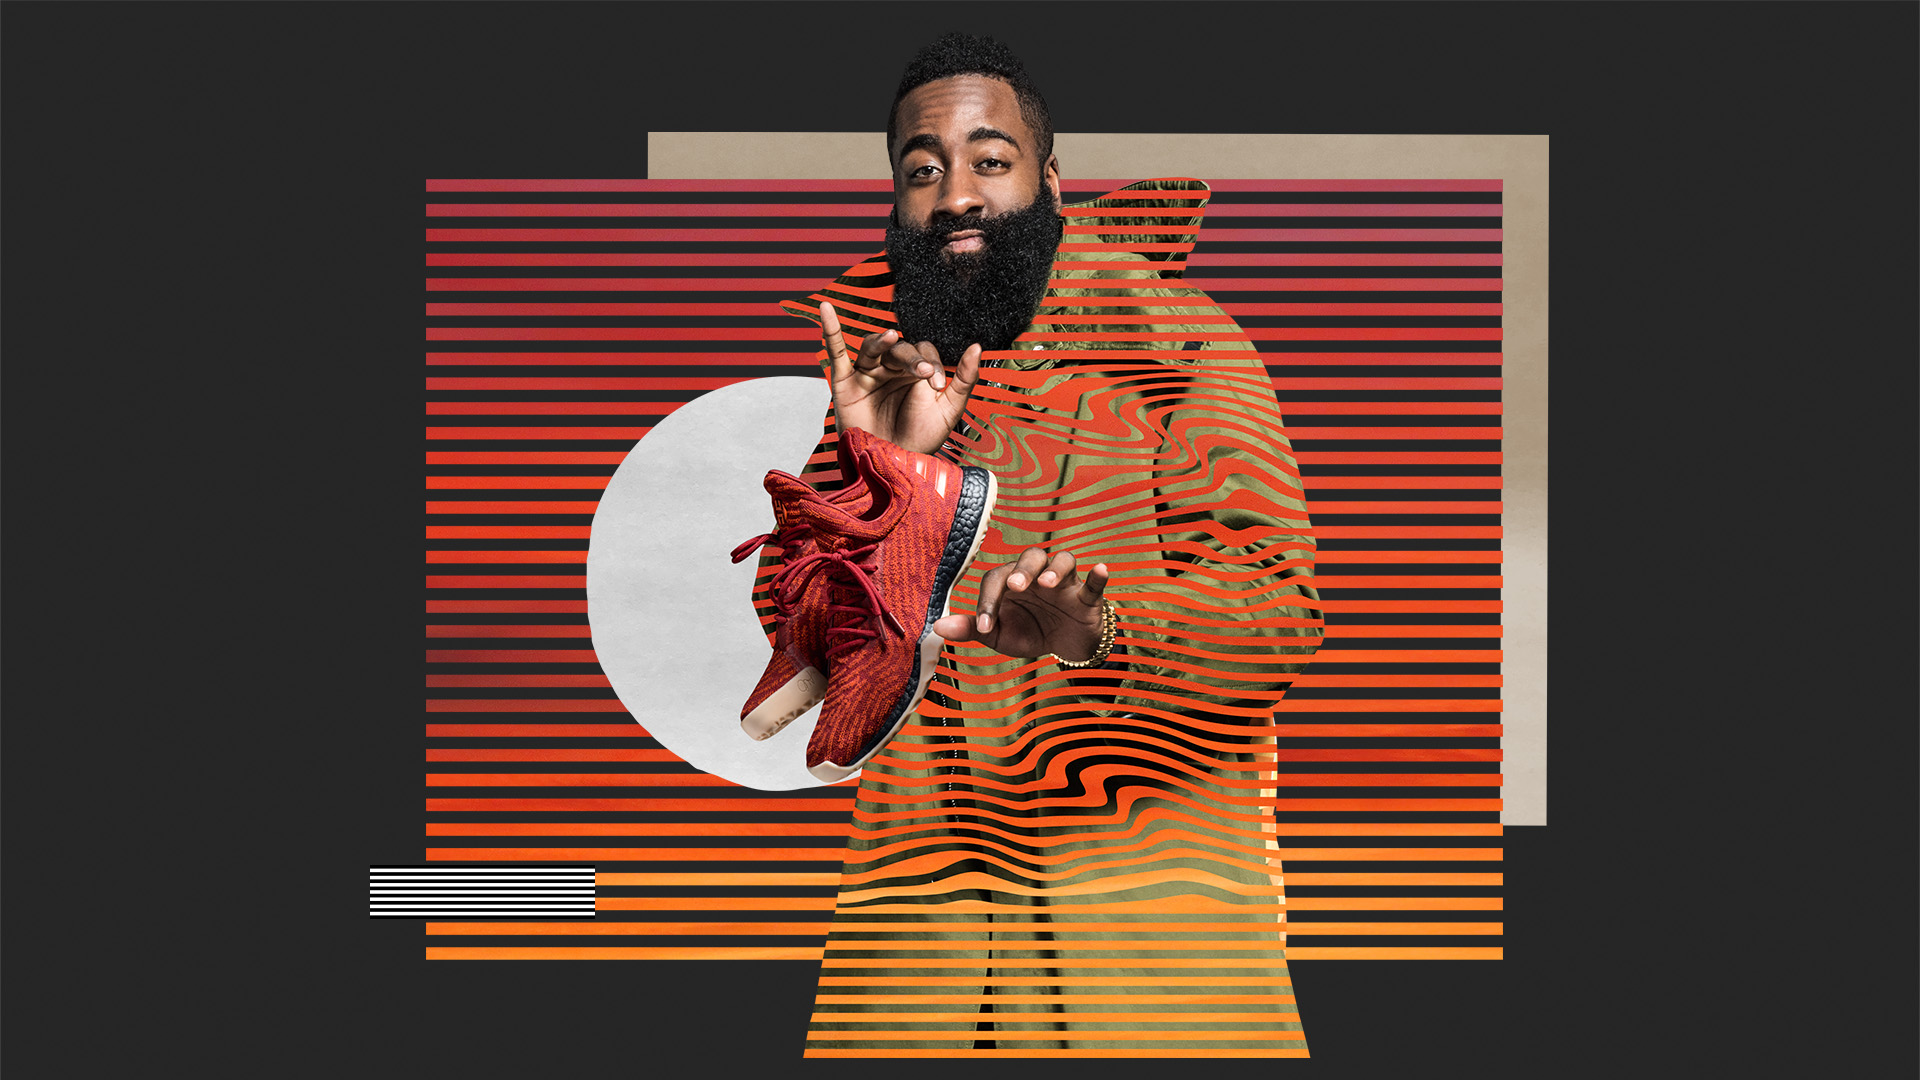 Adidas Introduces James Harden S New Sneaker The Harden Ls